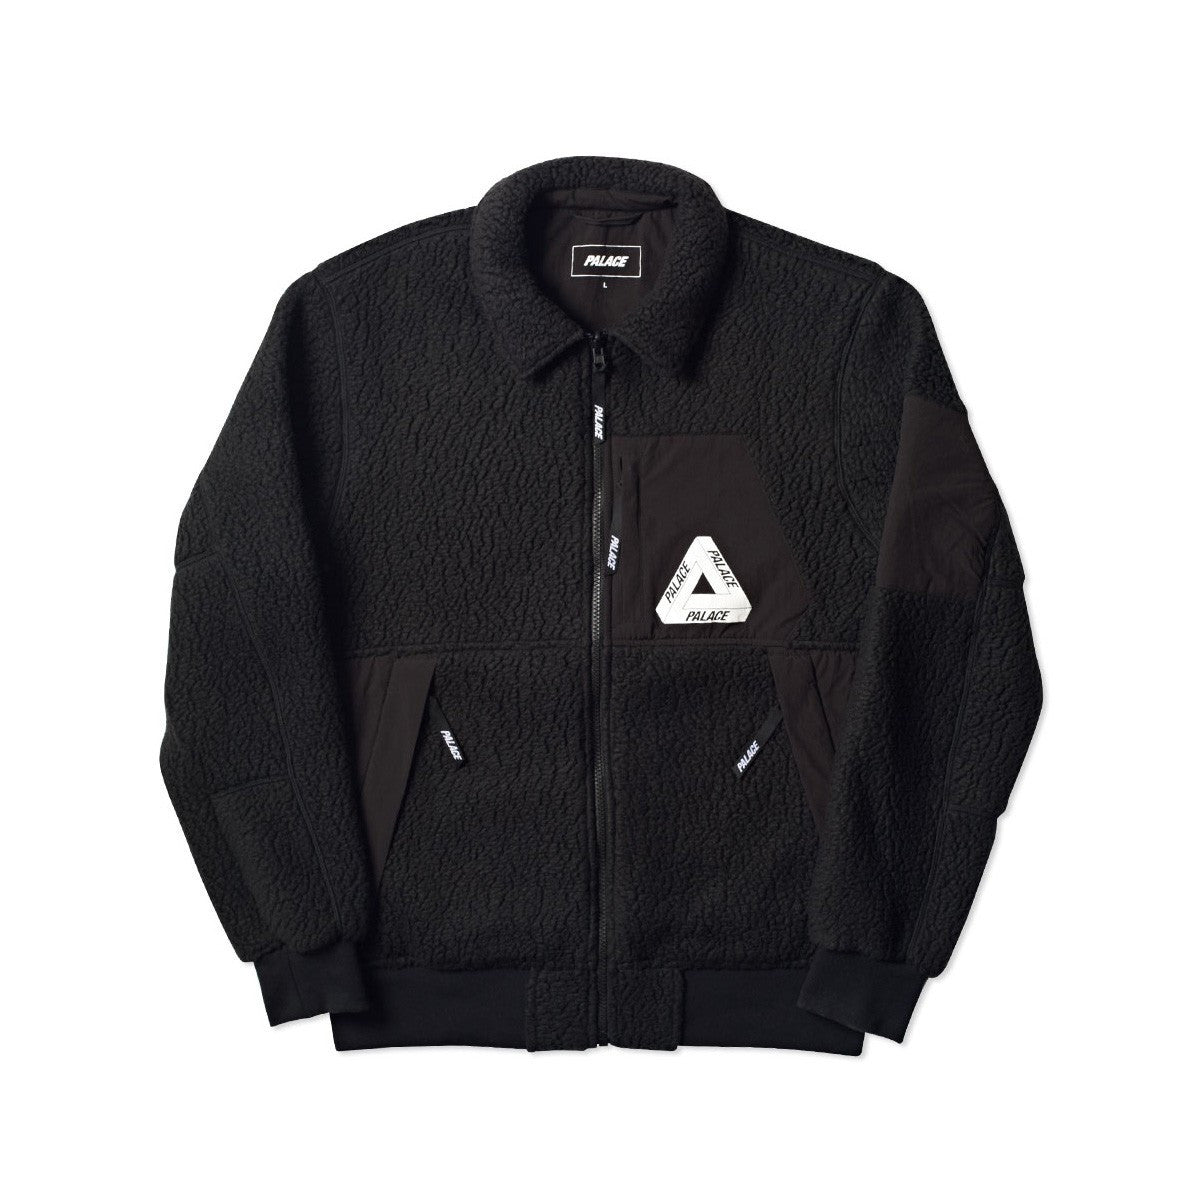 *new* Palace Polartec Fleece Bomber - DS Medium